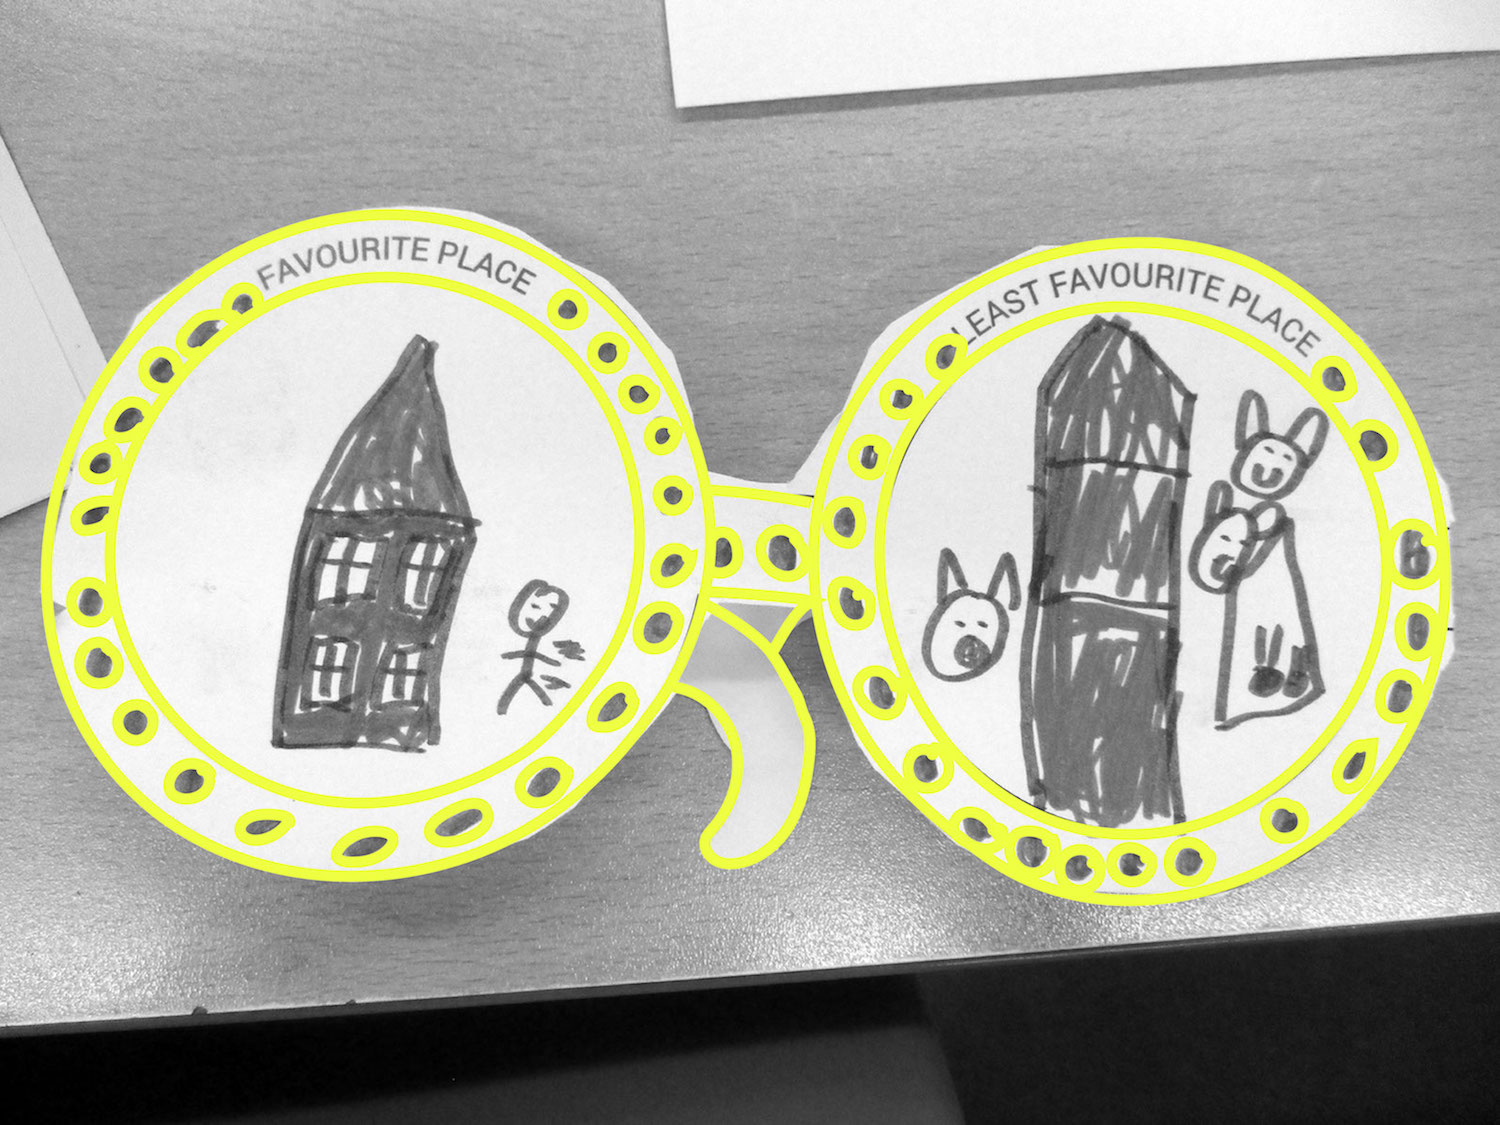 A pair of Empathy glasses made to of paper with a drawing on each lens, one is their favourite place and the other is their least favourite place.